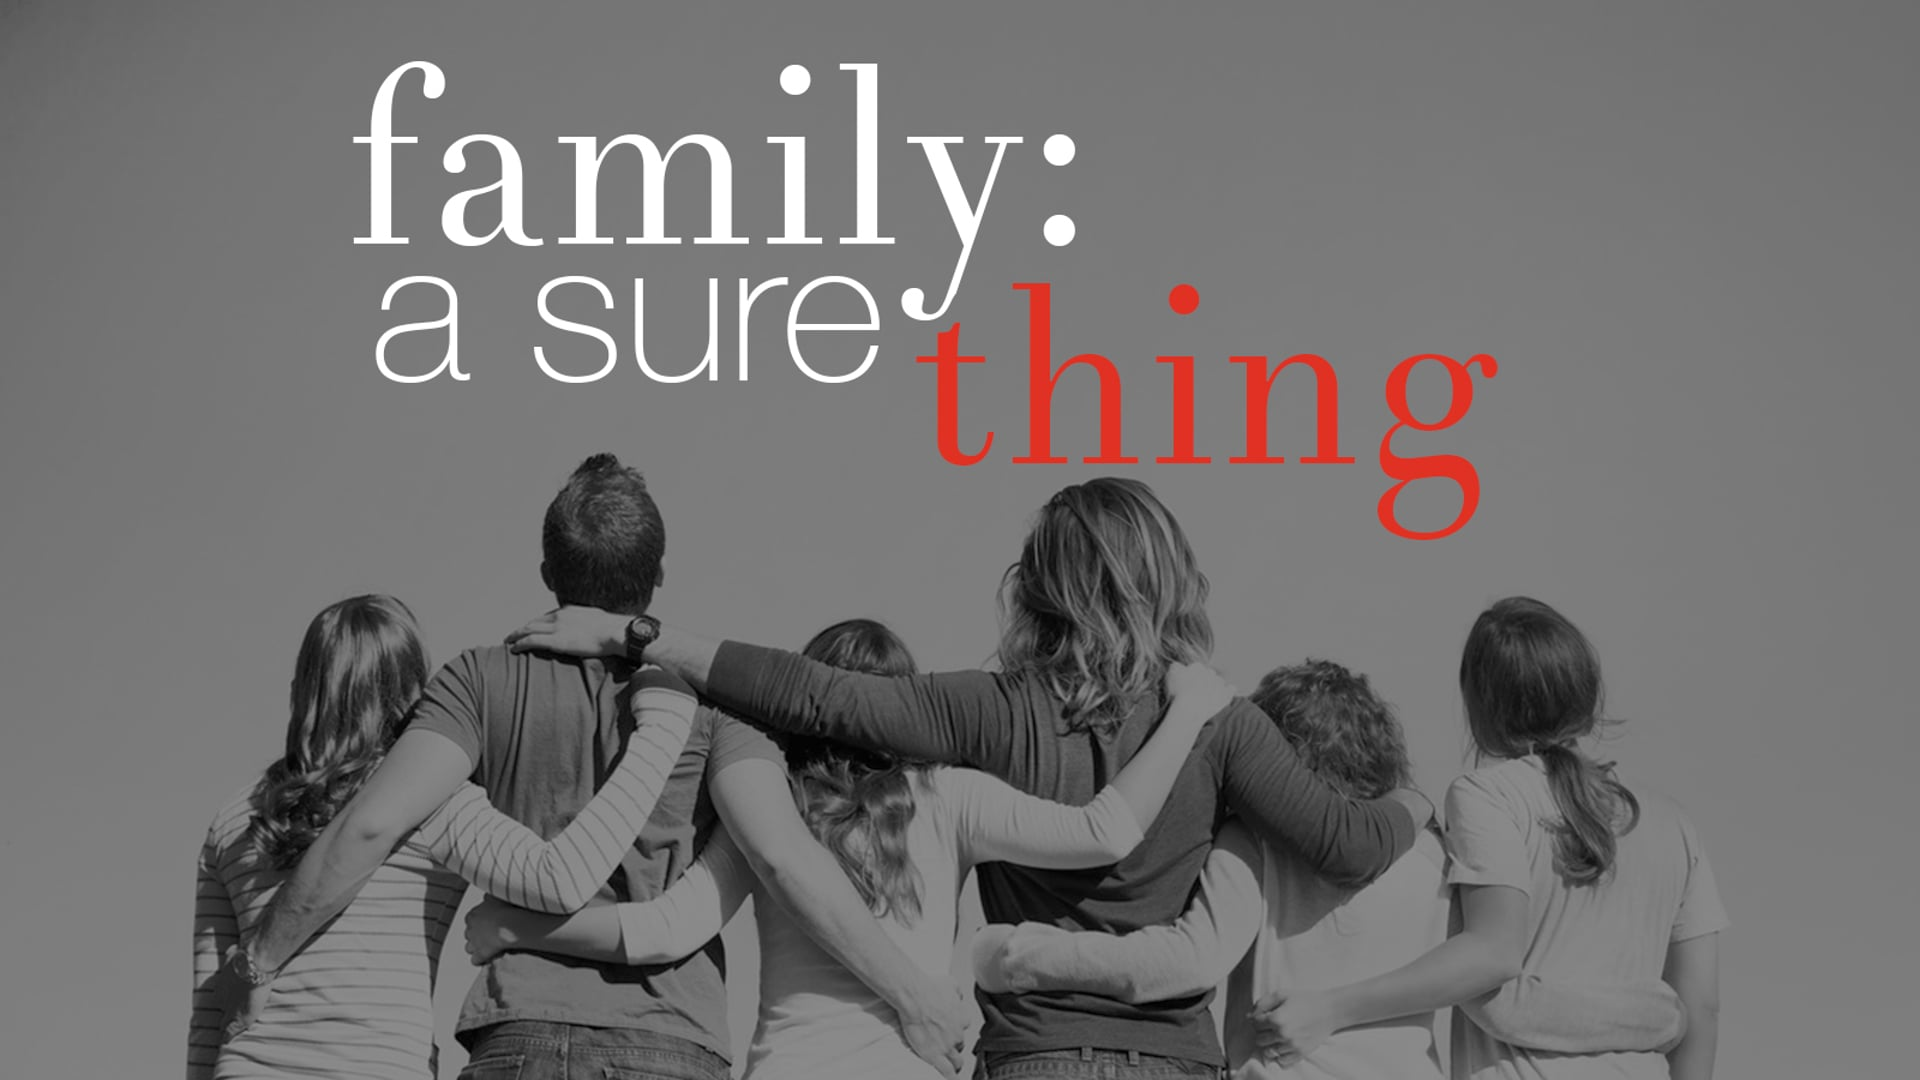 Family: A Sure Thing - Security